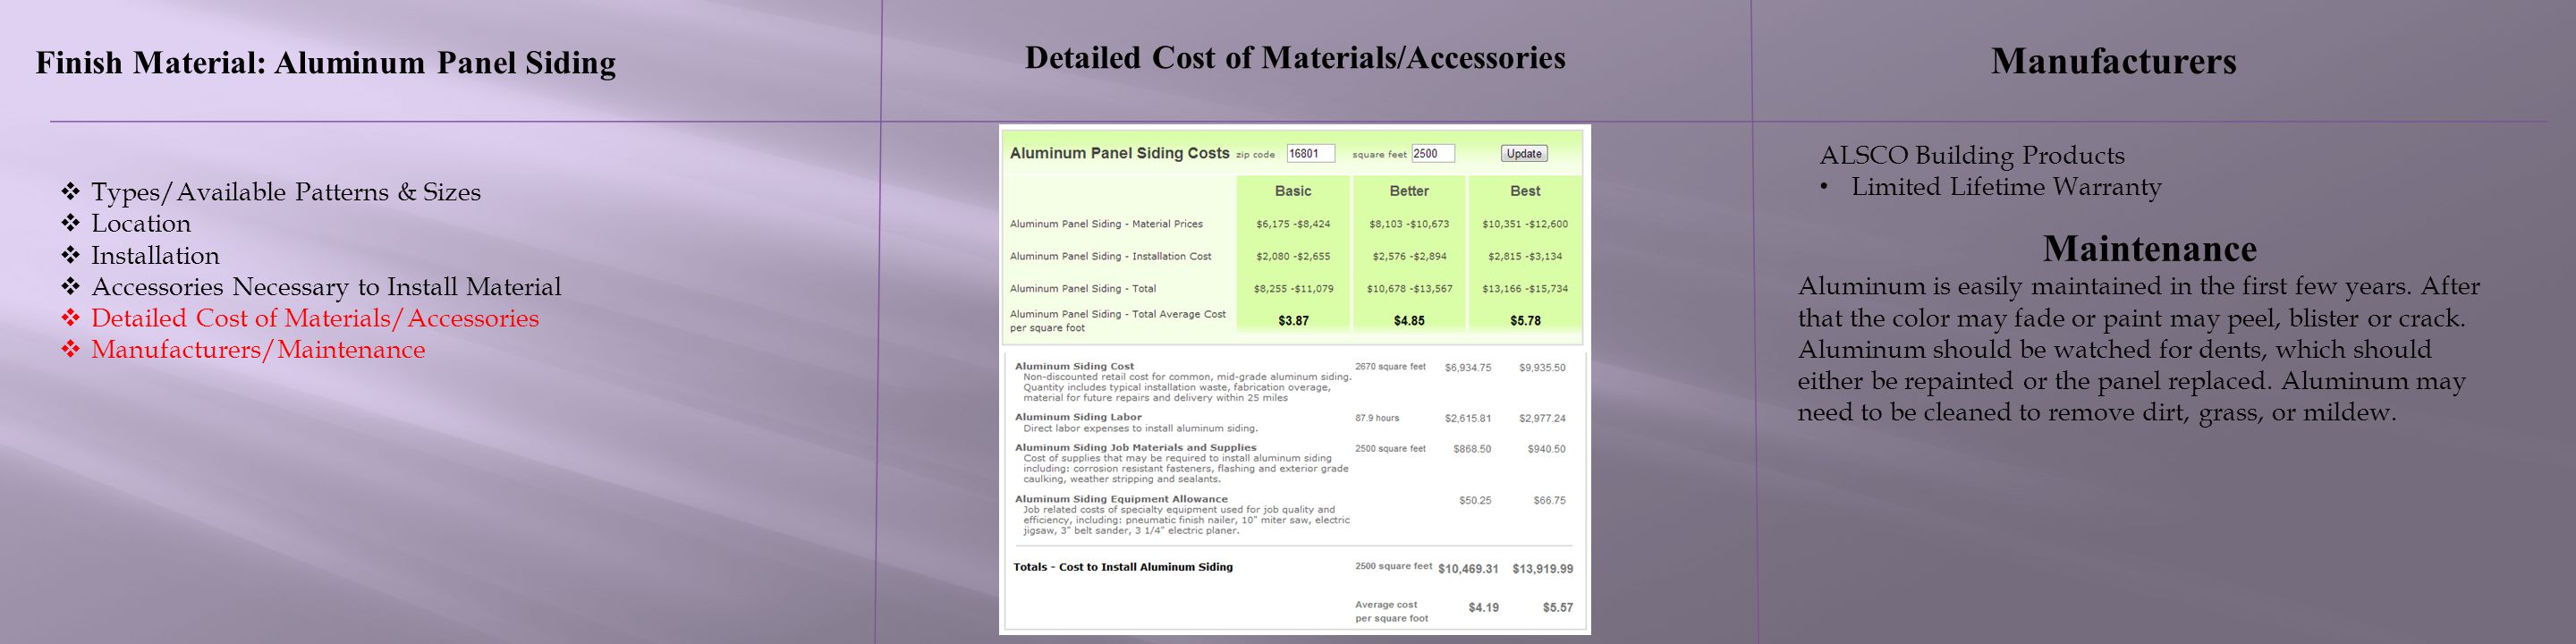 Detailed Cost of Materials/Accessories